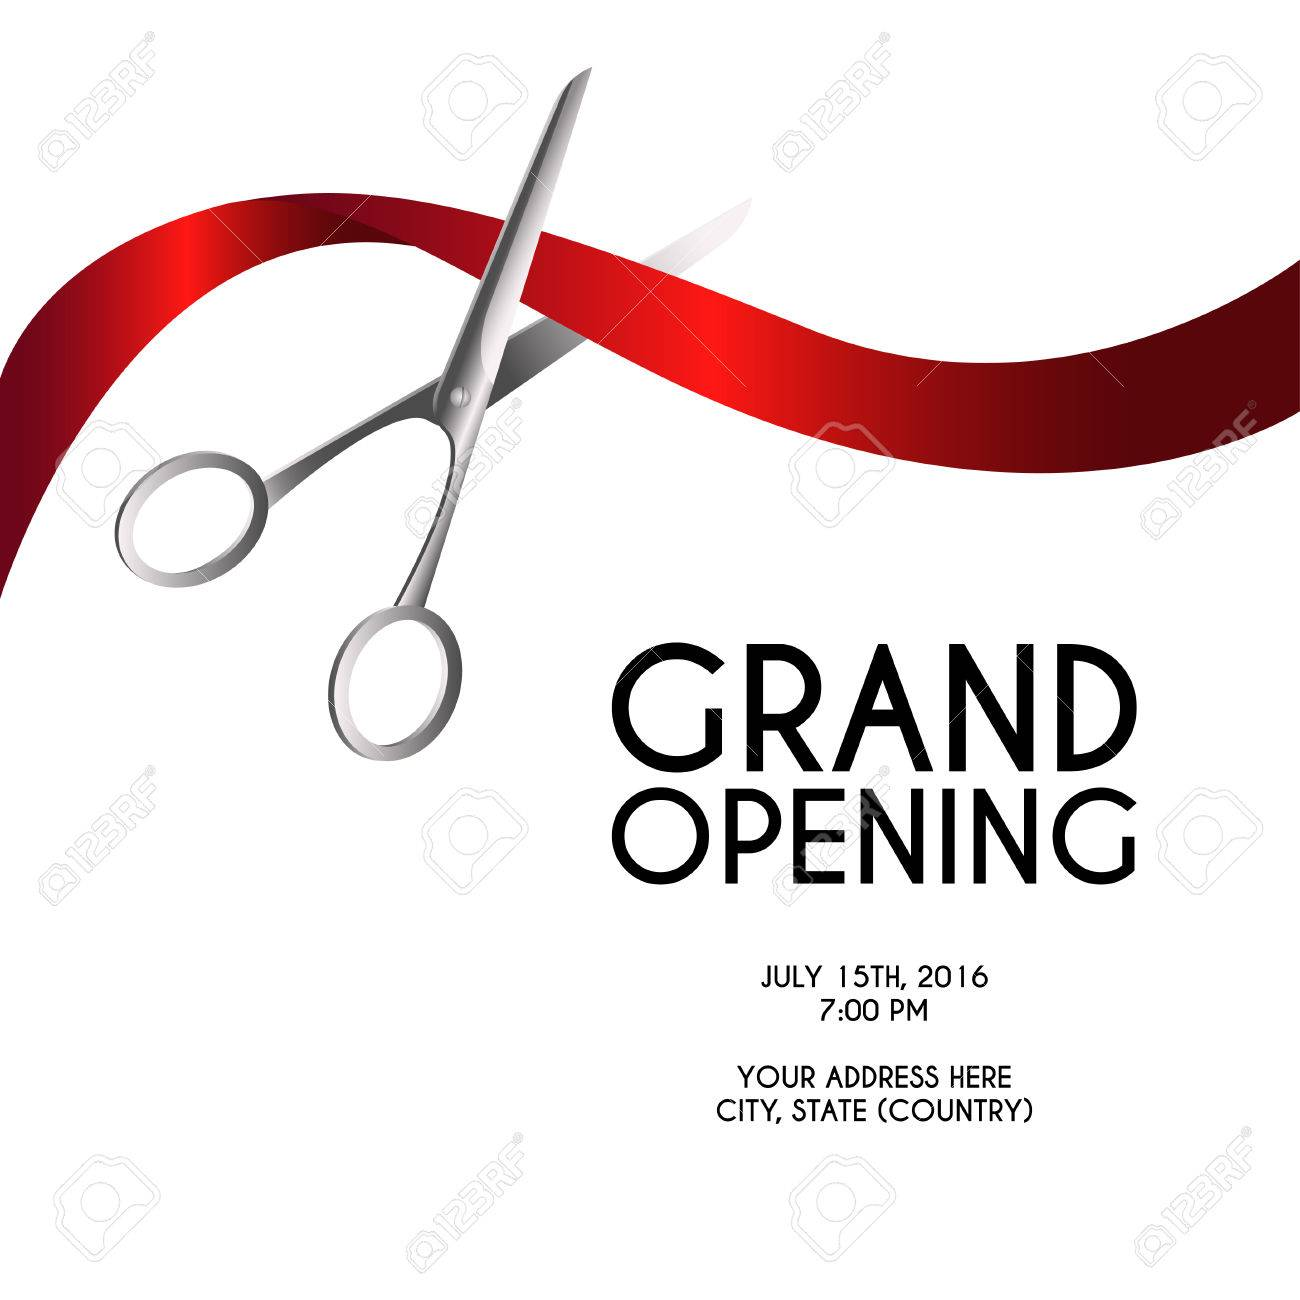 Grand opening poster mock-up with silver scissors cutting red ribbon isolated on white background, design announcement template. Editable and movable objects. - 56099644